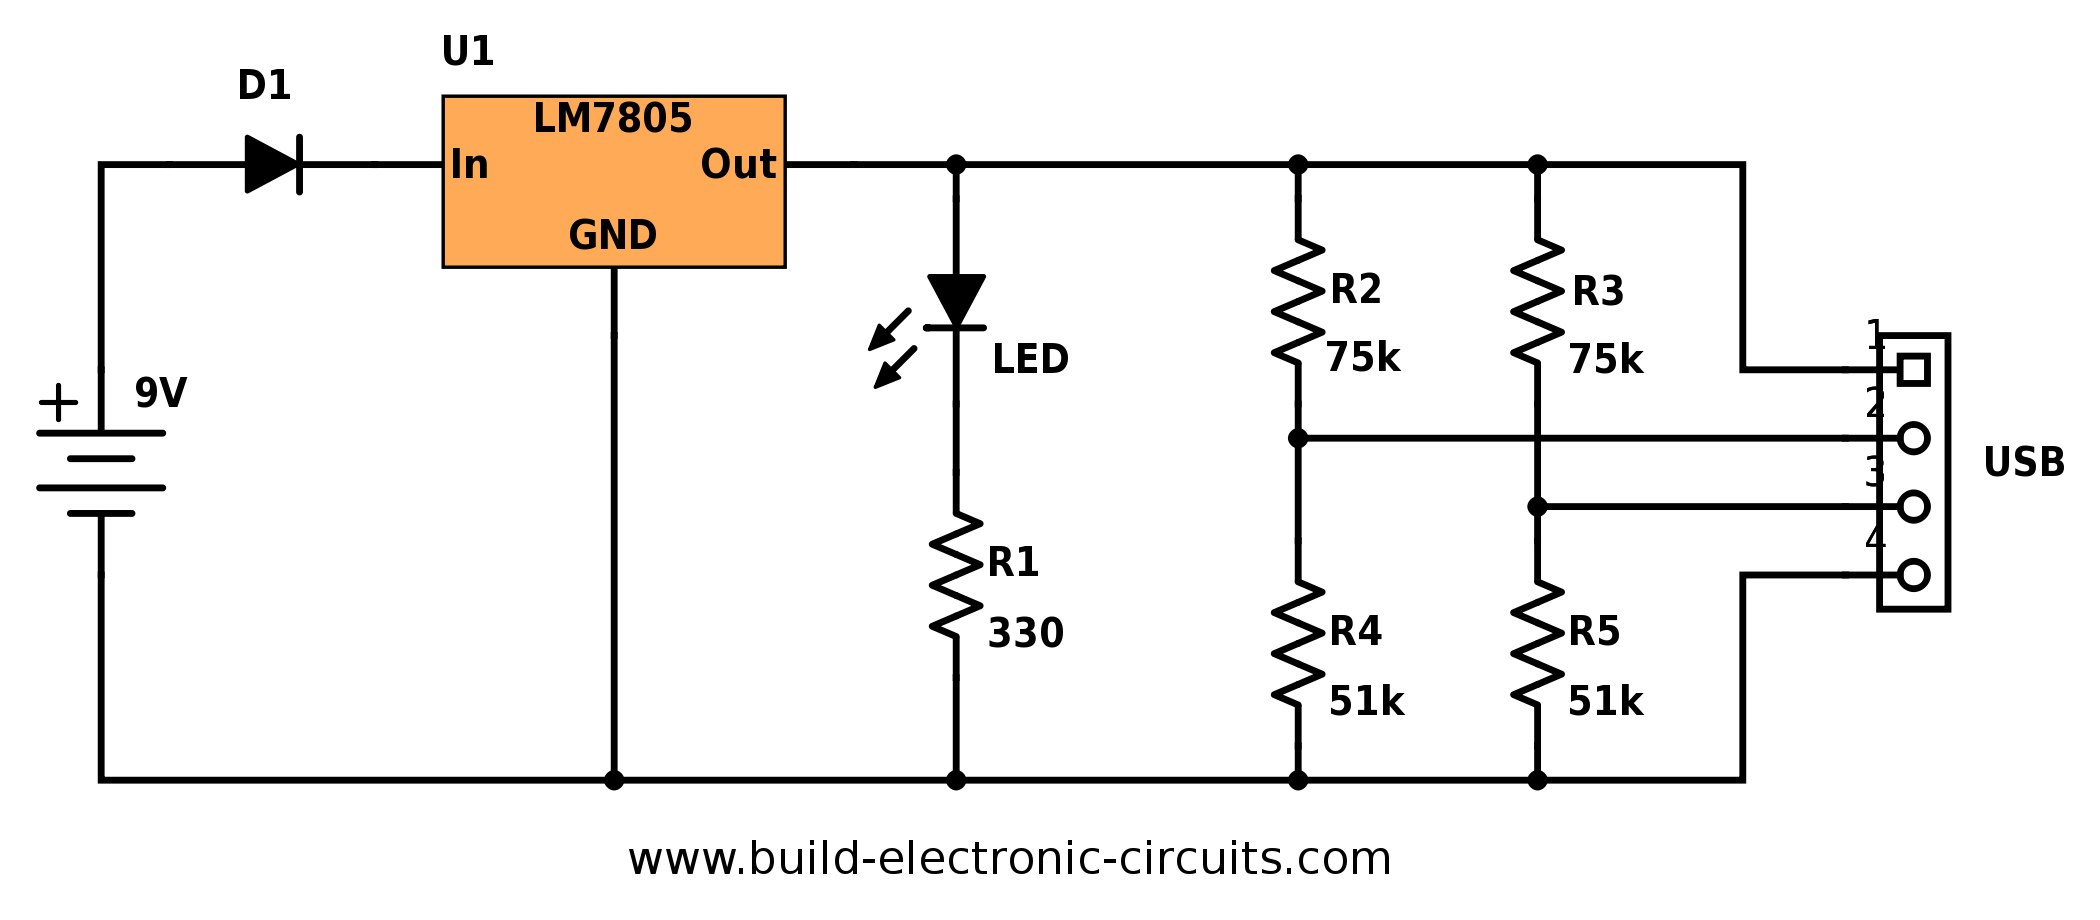 Portable Usb Charger Circuit - Build Electronic Circuits - Usb Minu Fan Wiring Diagram